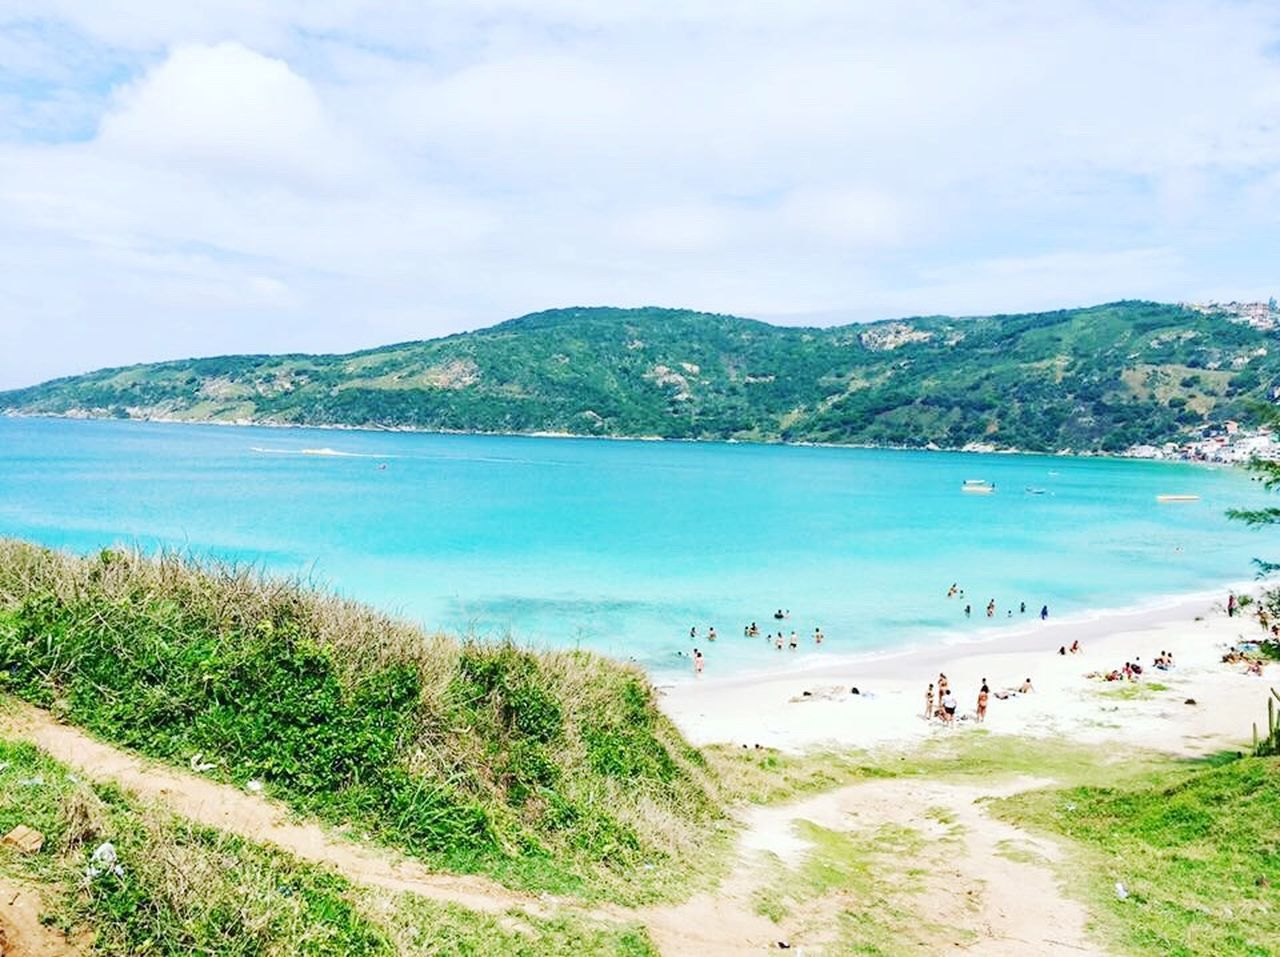 sea, scenics, beauty in nature, beach, water, nature, tranquility, tranquil scene, mountain, sky, sand, day, idyllic, cloud - sky, outdoors, horizon over water, vacations, grass, landscape, travel destinations, no people, tree